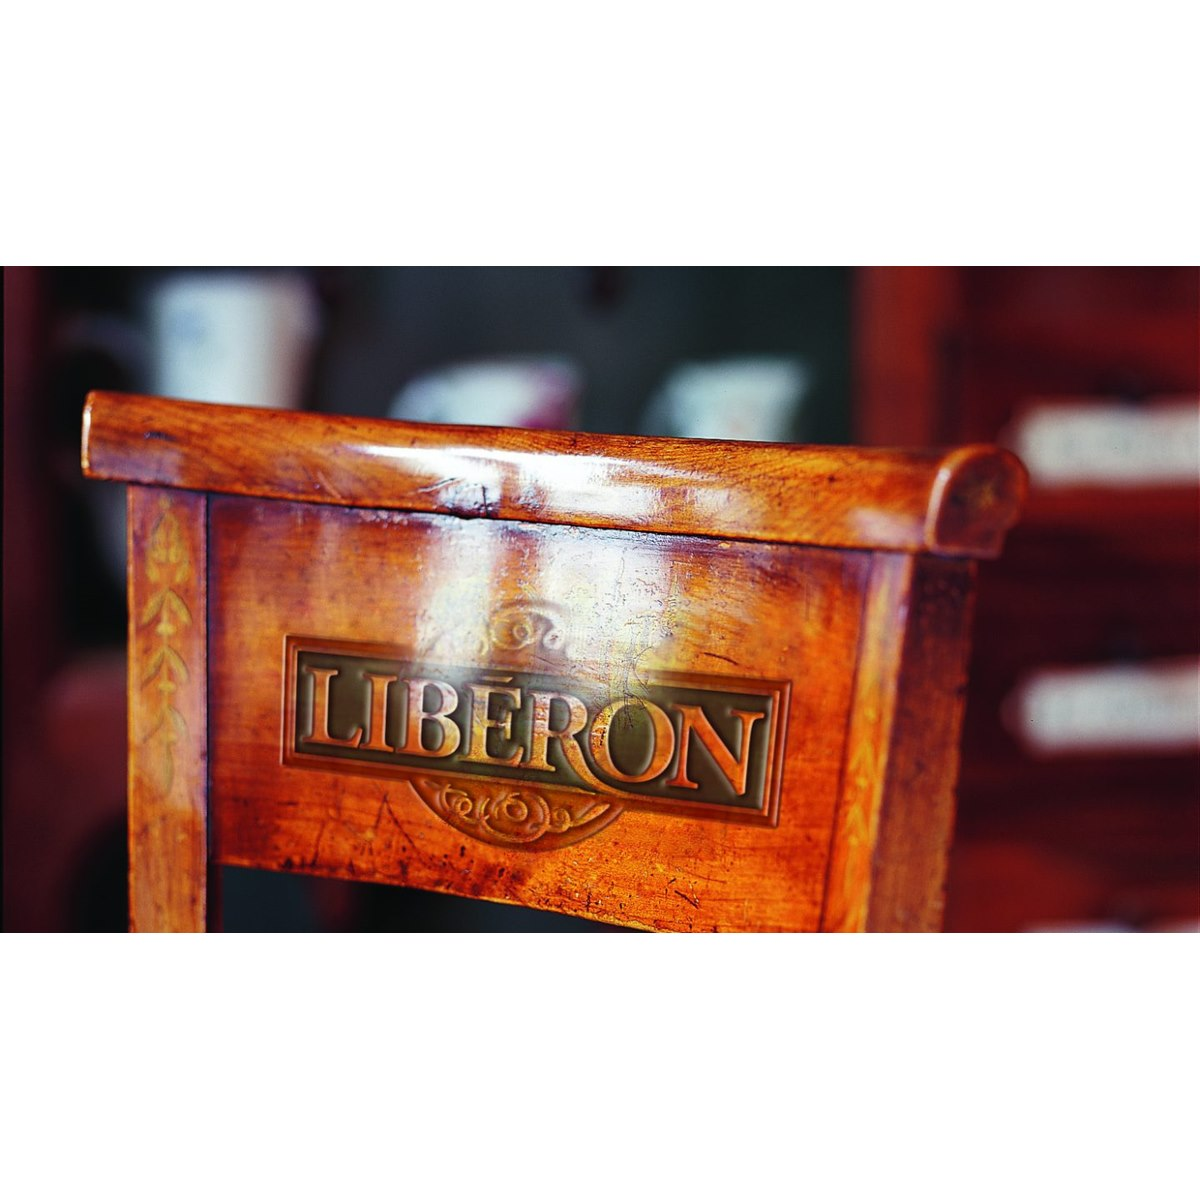 Where to buy Liberon Products Online